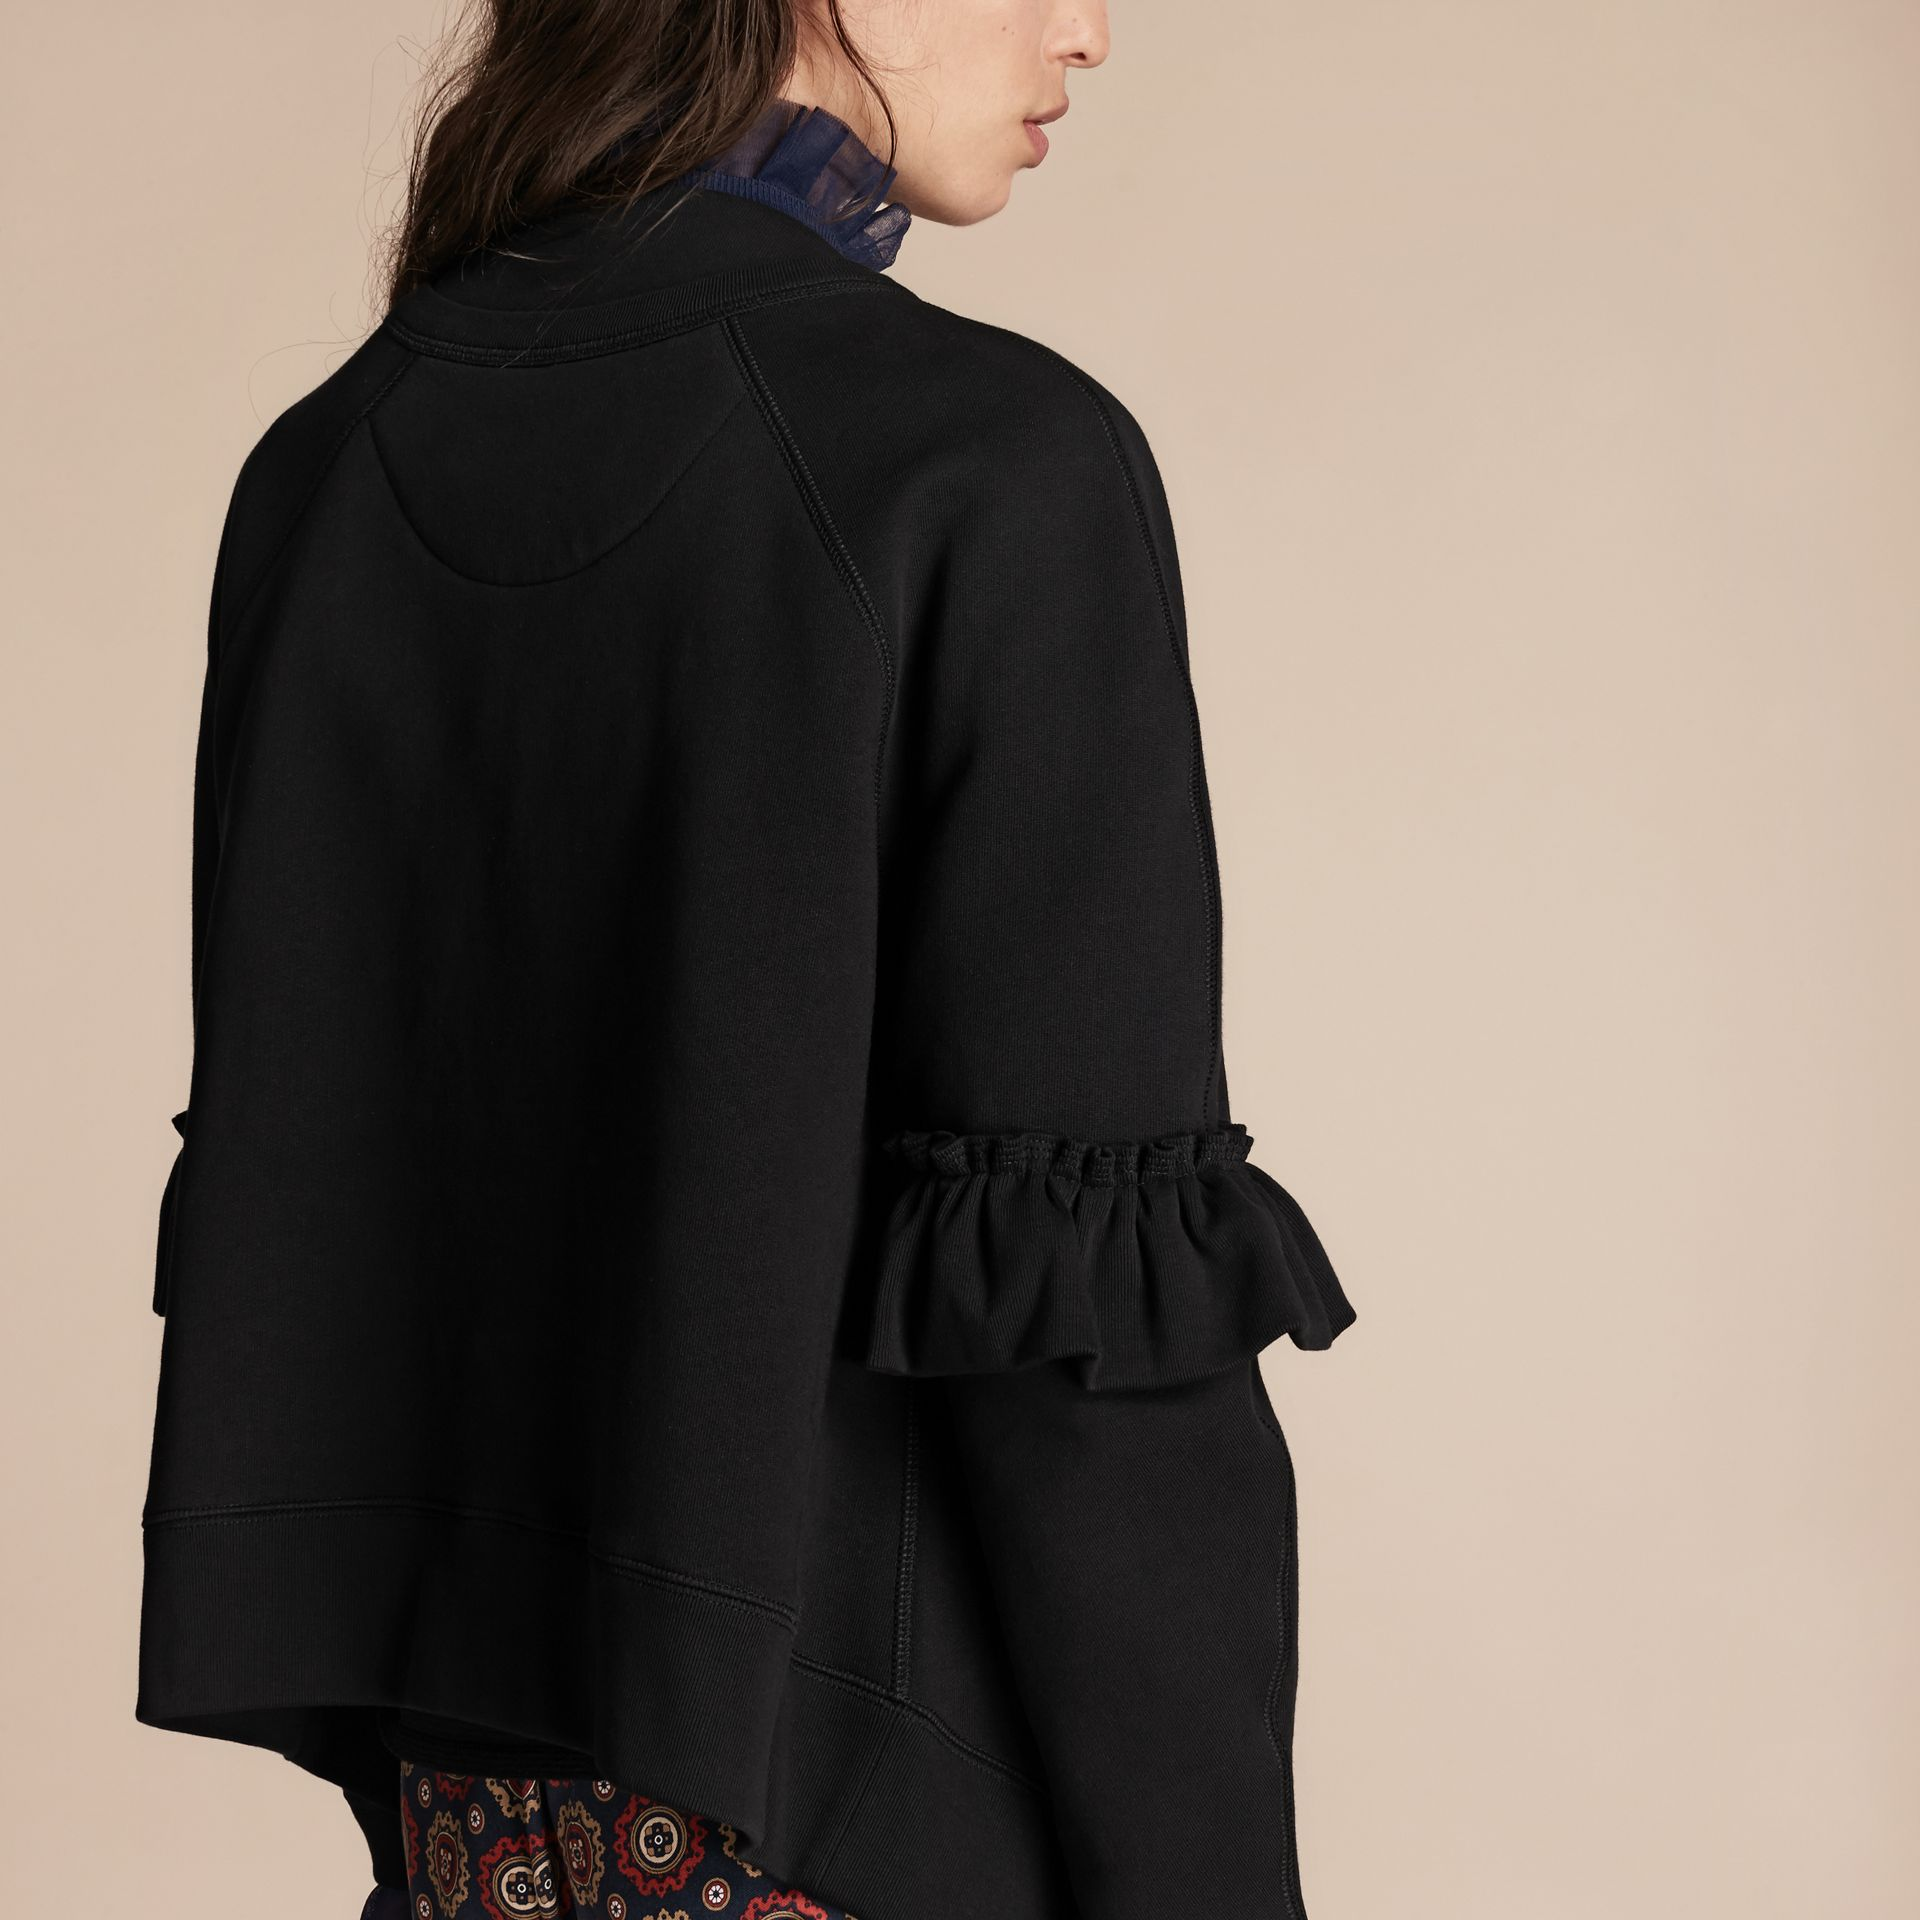 Black Cotton Blend Sweatshirt Jacket with Ruffle Sleeves Black - gallery image 6